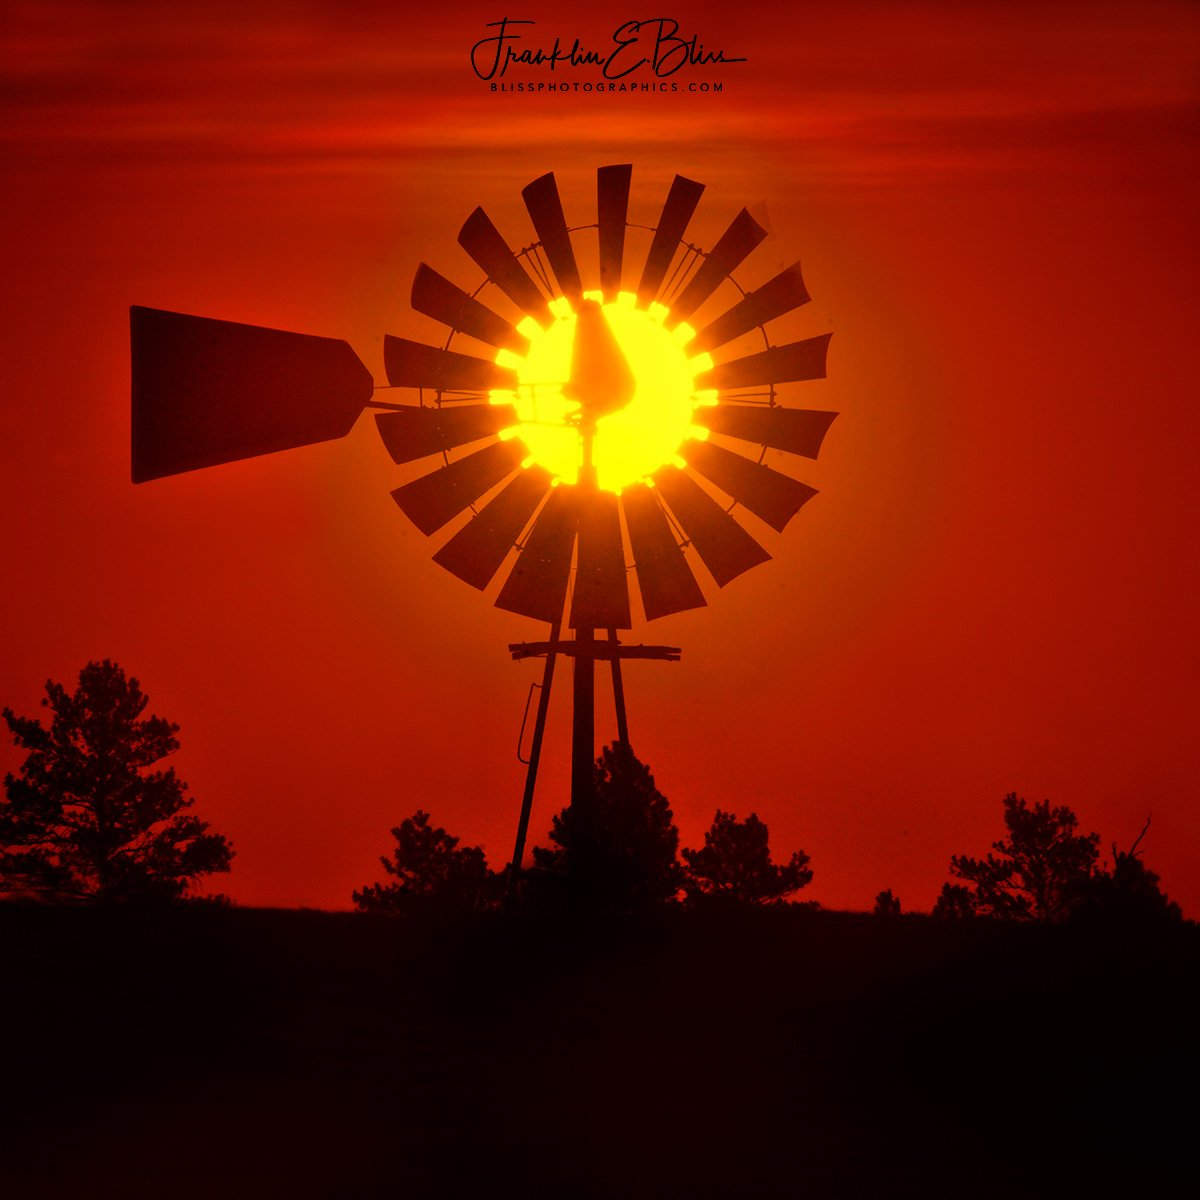 New post (##Windmill ##Sun #Filter) has been published on Bliss ... - https://blissphotographics.com/windmill-sun-filter/… #18x18inches #Bliss #BlissDinosaurRanch #BlissPhotographics #Centered #Crimson #Montana #ScienceSunday #Silhouette #Sonyalpha #Square #SundayRead #Trees #Wyoming #Yellow #Ranch